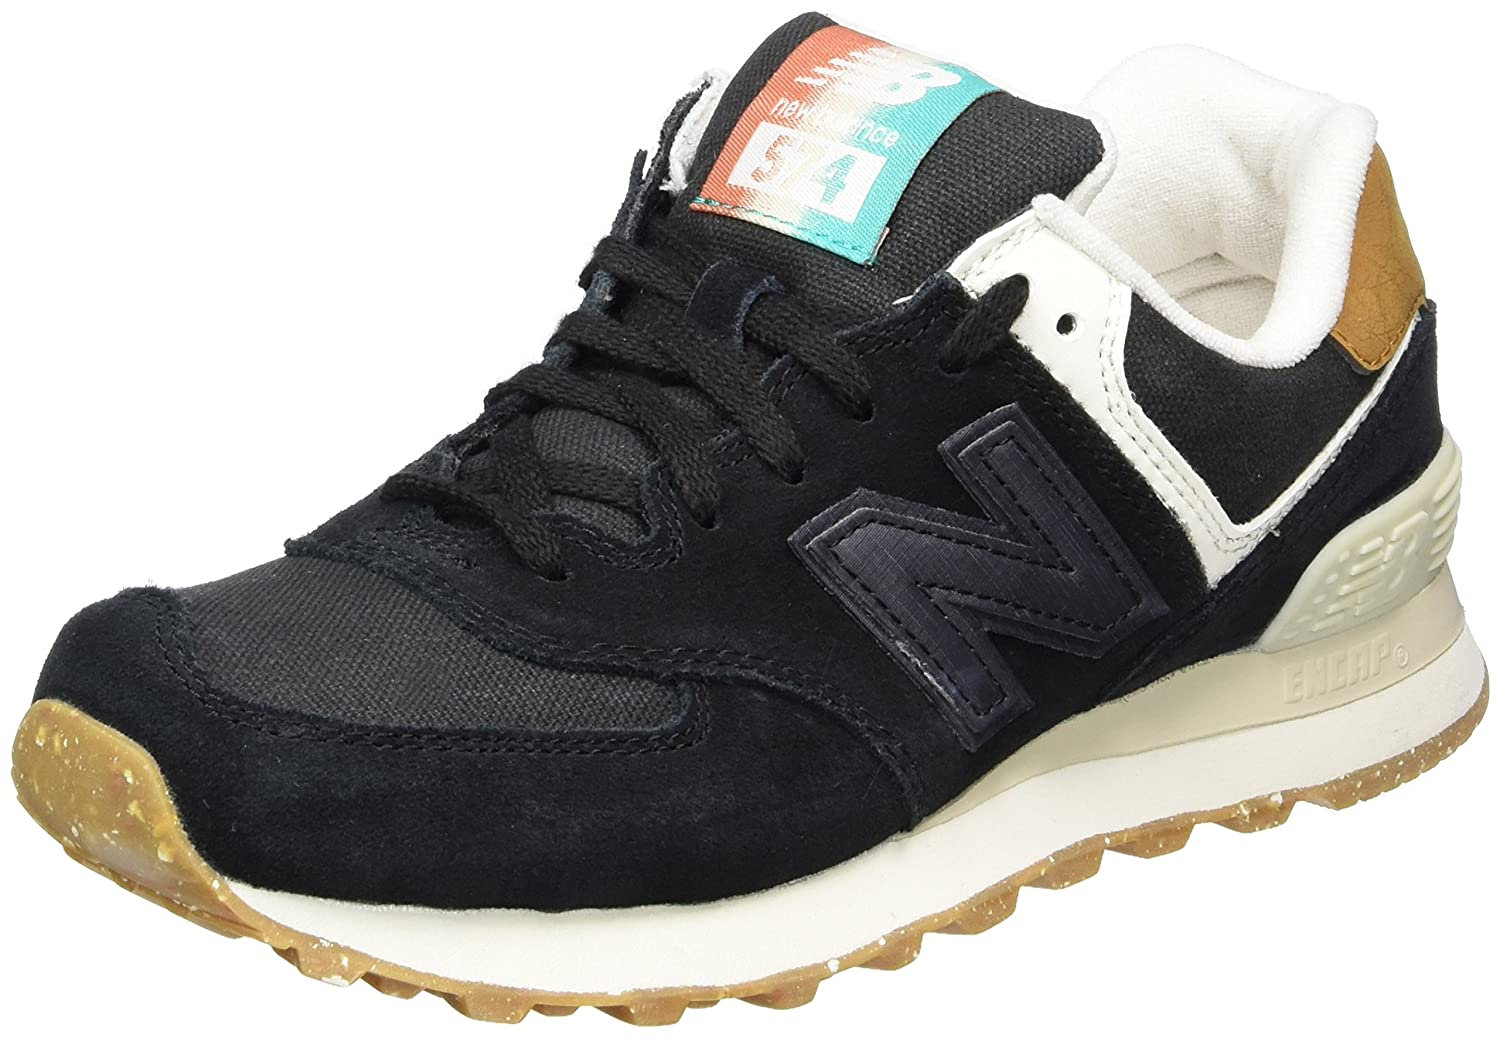 New Balance Damen 574 Global Surf Turnschuhe